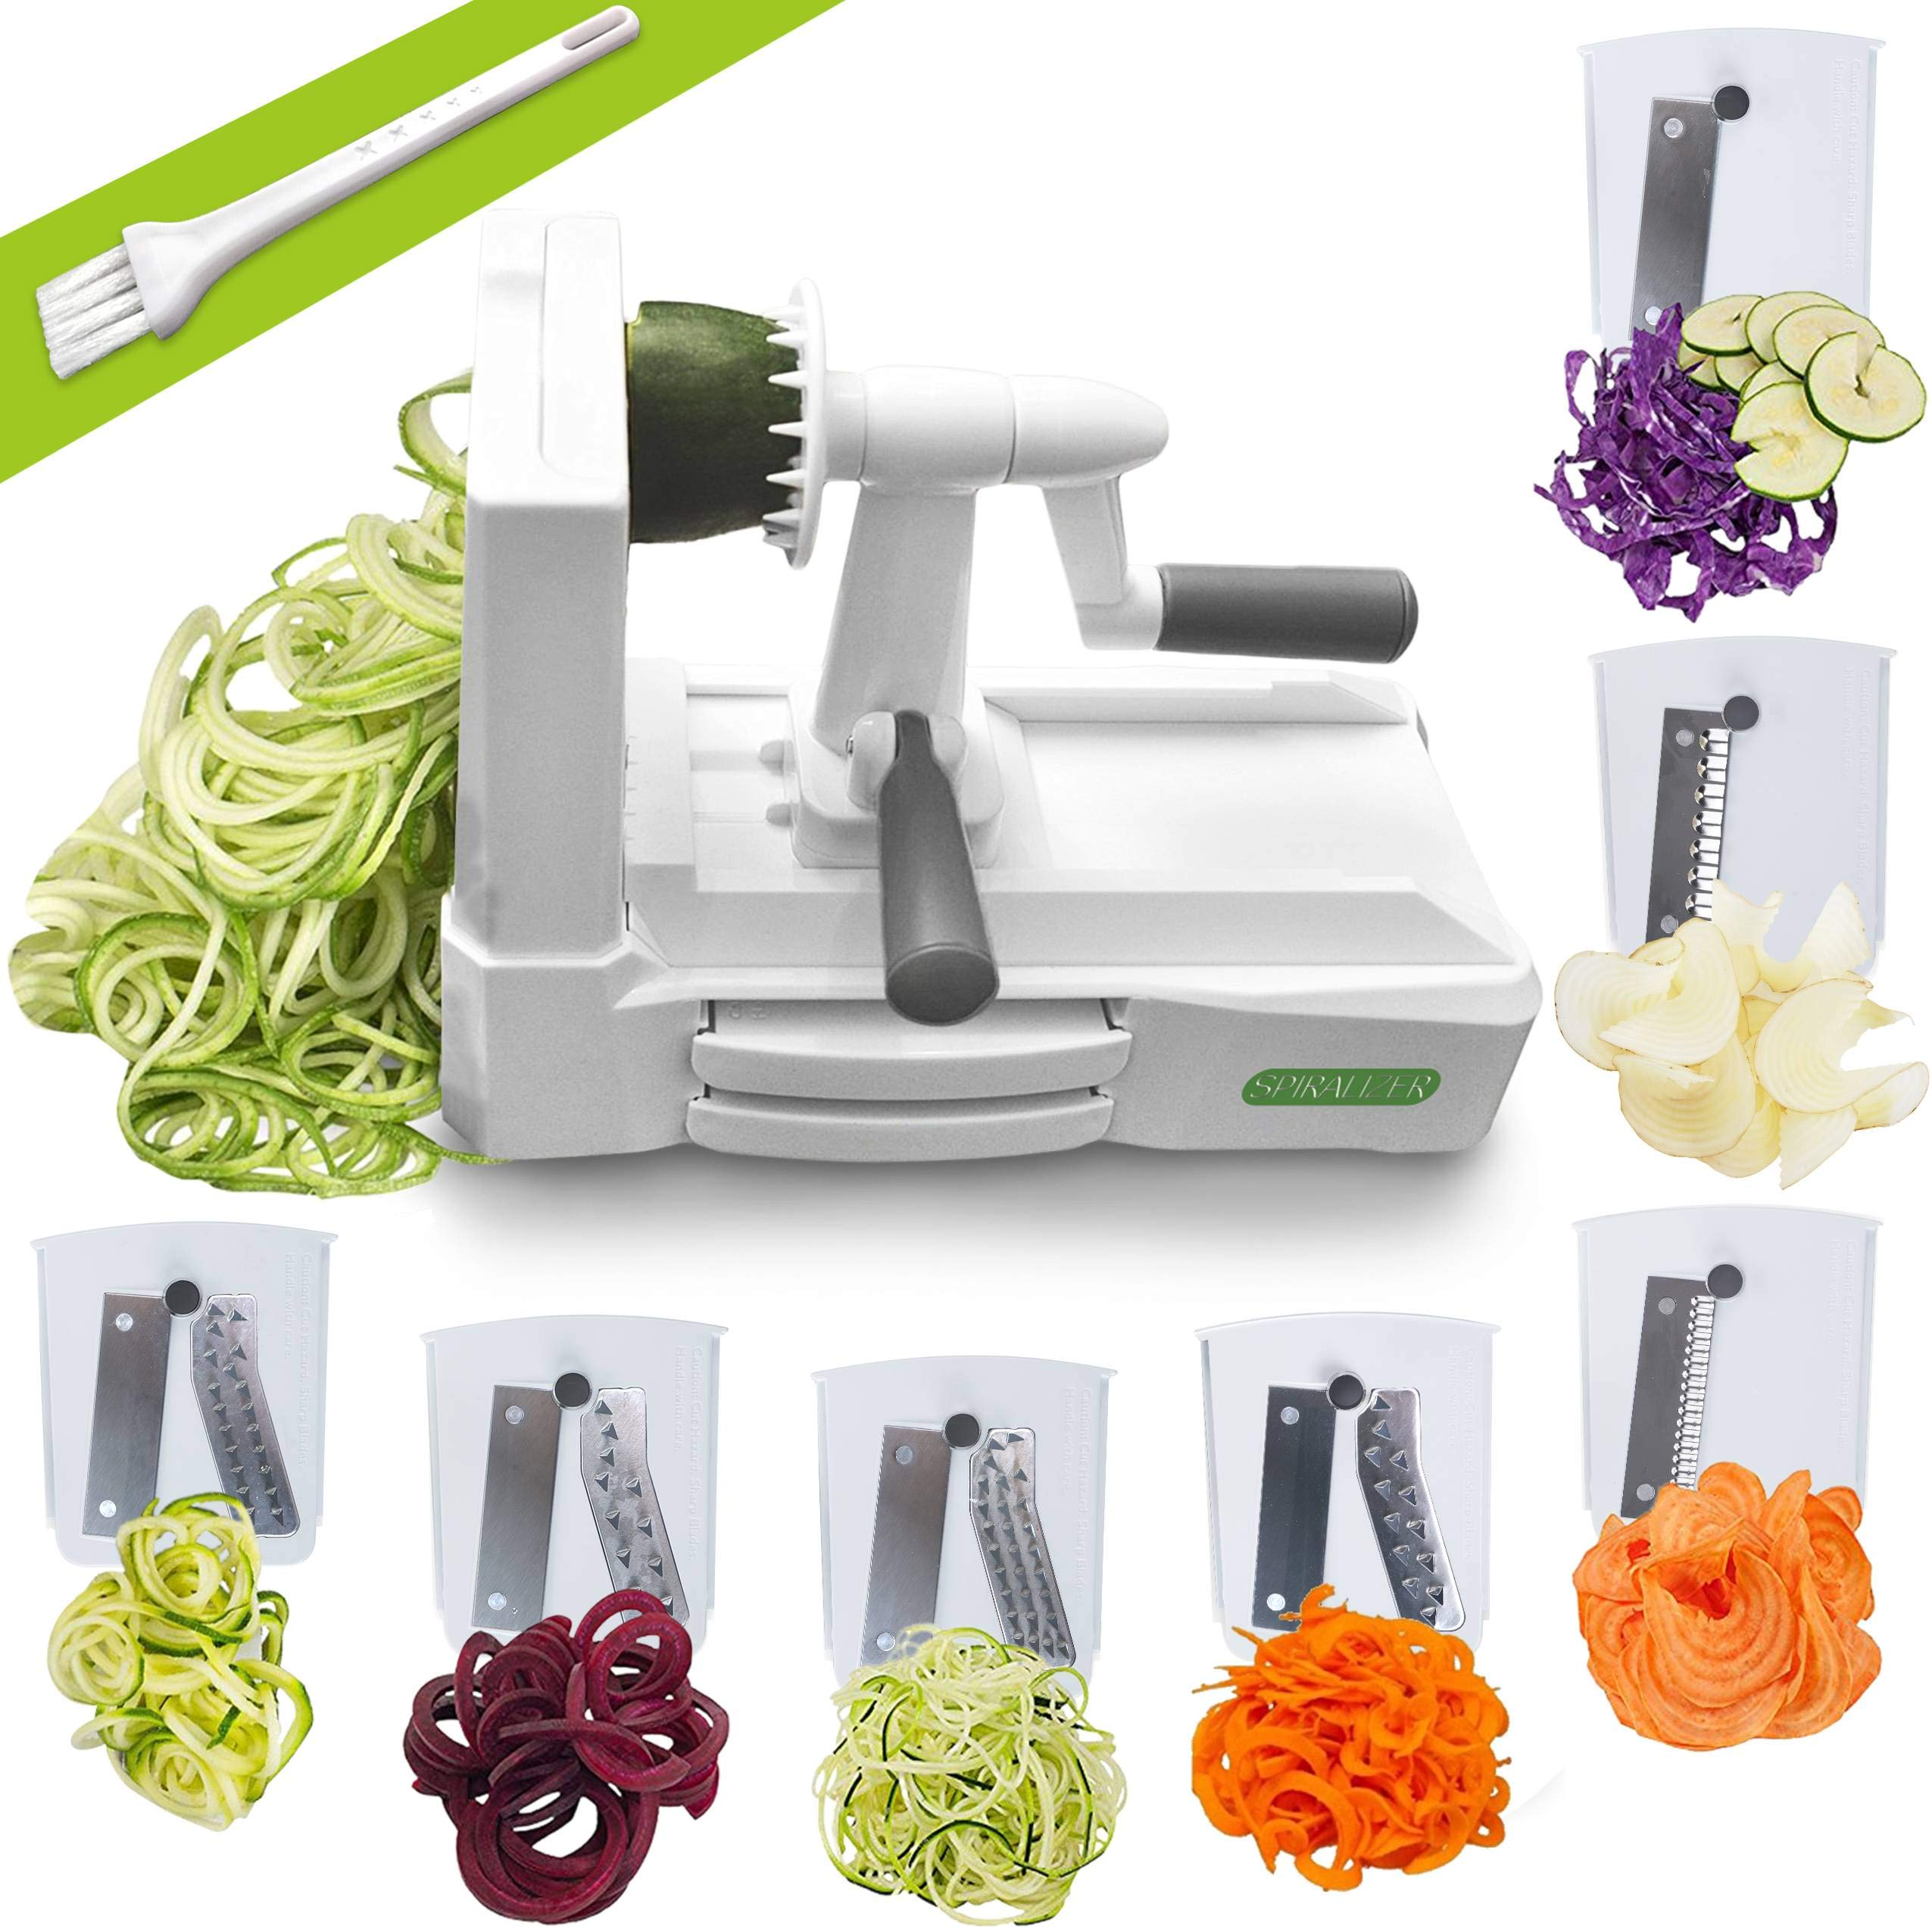 Spiralizer Ultimate 7 Strongest-and-Heaviest Duty Vegetable Slicer Best Veggie Pasta Spaghetti Maker for Keto/Paleo/Gluten-Free, With Extra Blade Caddy & 4 Recipe Ebook, White by Spiralizer